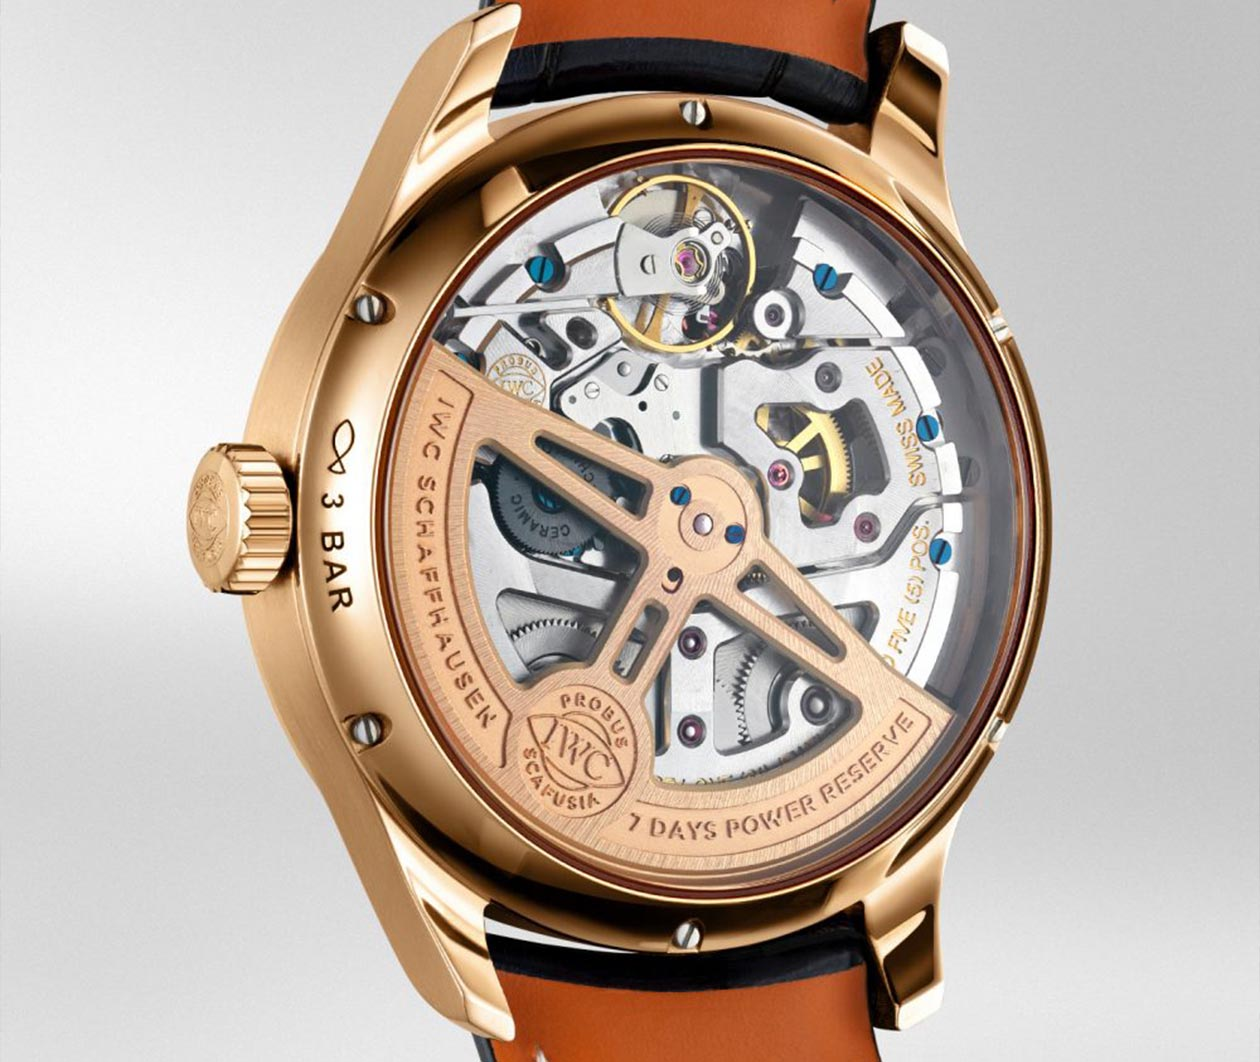 IWC Portugieser PerpetualCalendarBoutiqueEdition IW503312 Carousel 5 FINAL